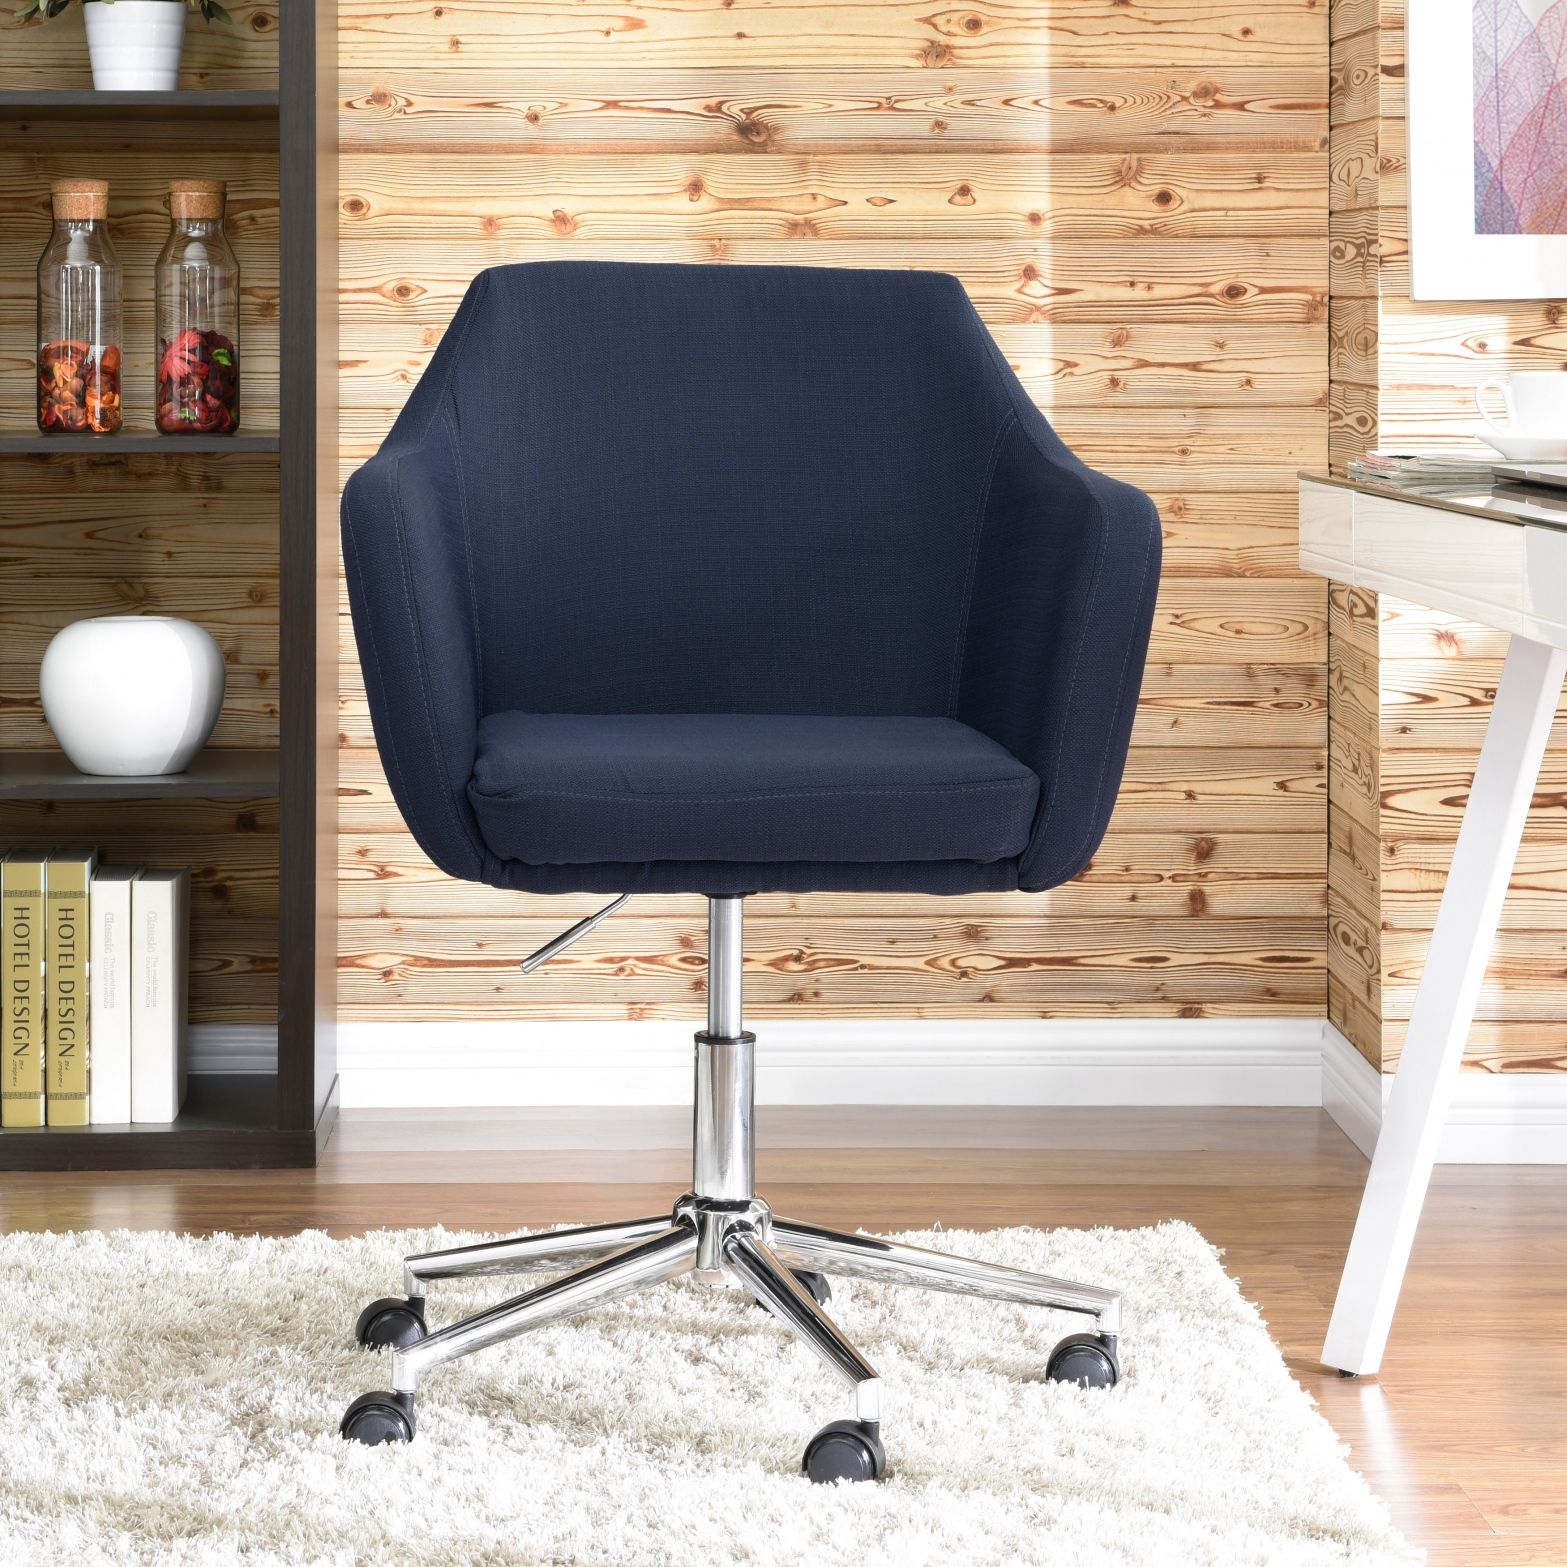 55+ Flame Retardant Free Office Chair   Contemporary Home Office Furniture  Check More At Http